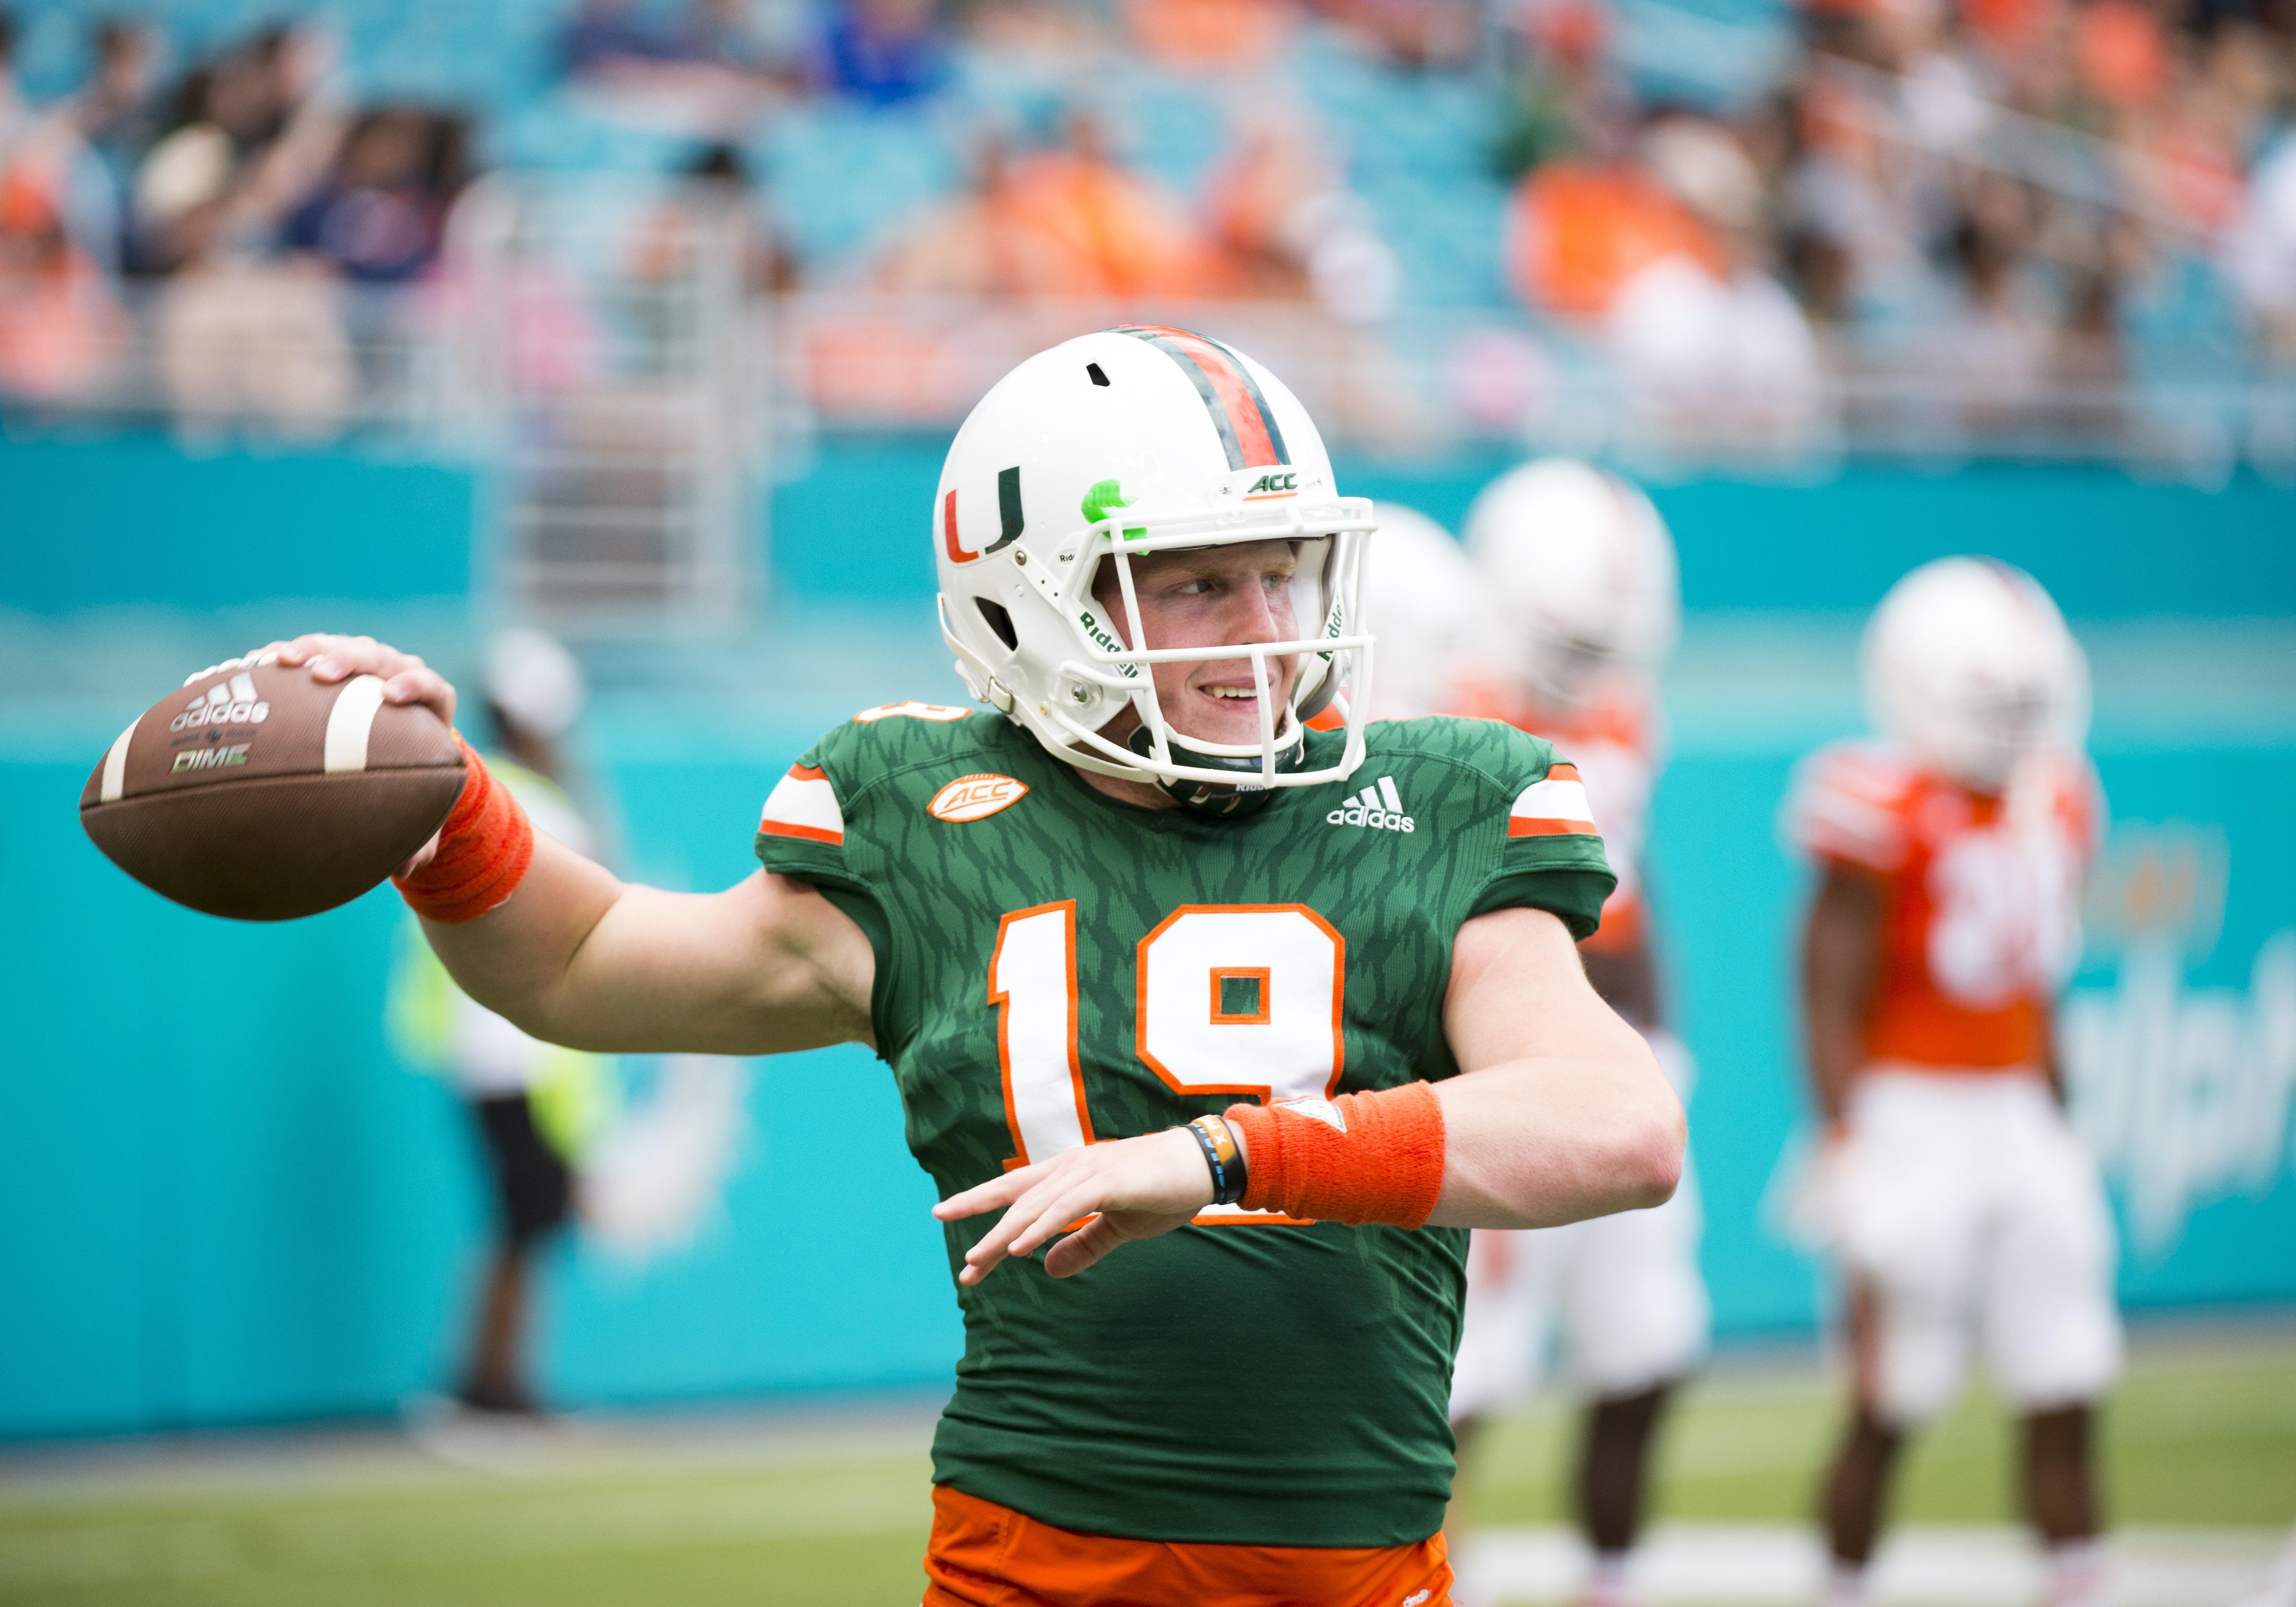 COLLEGE FOOTBALL: APR 14 Miami Spring Game